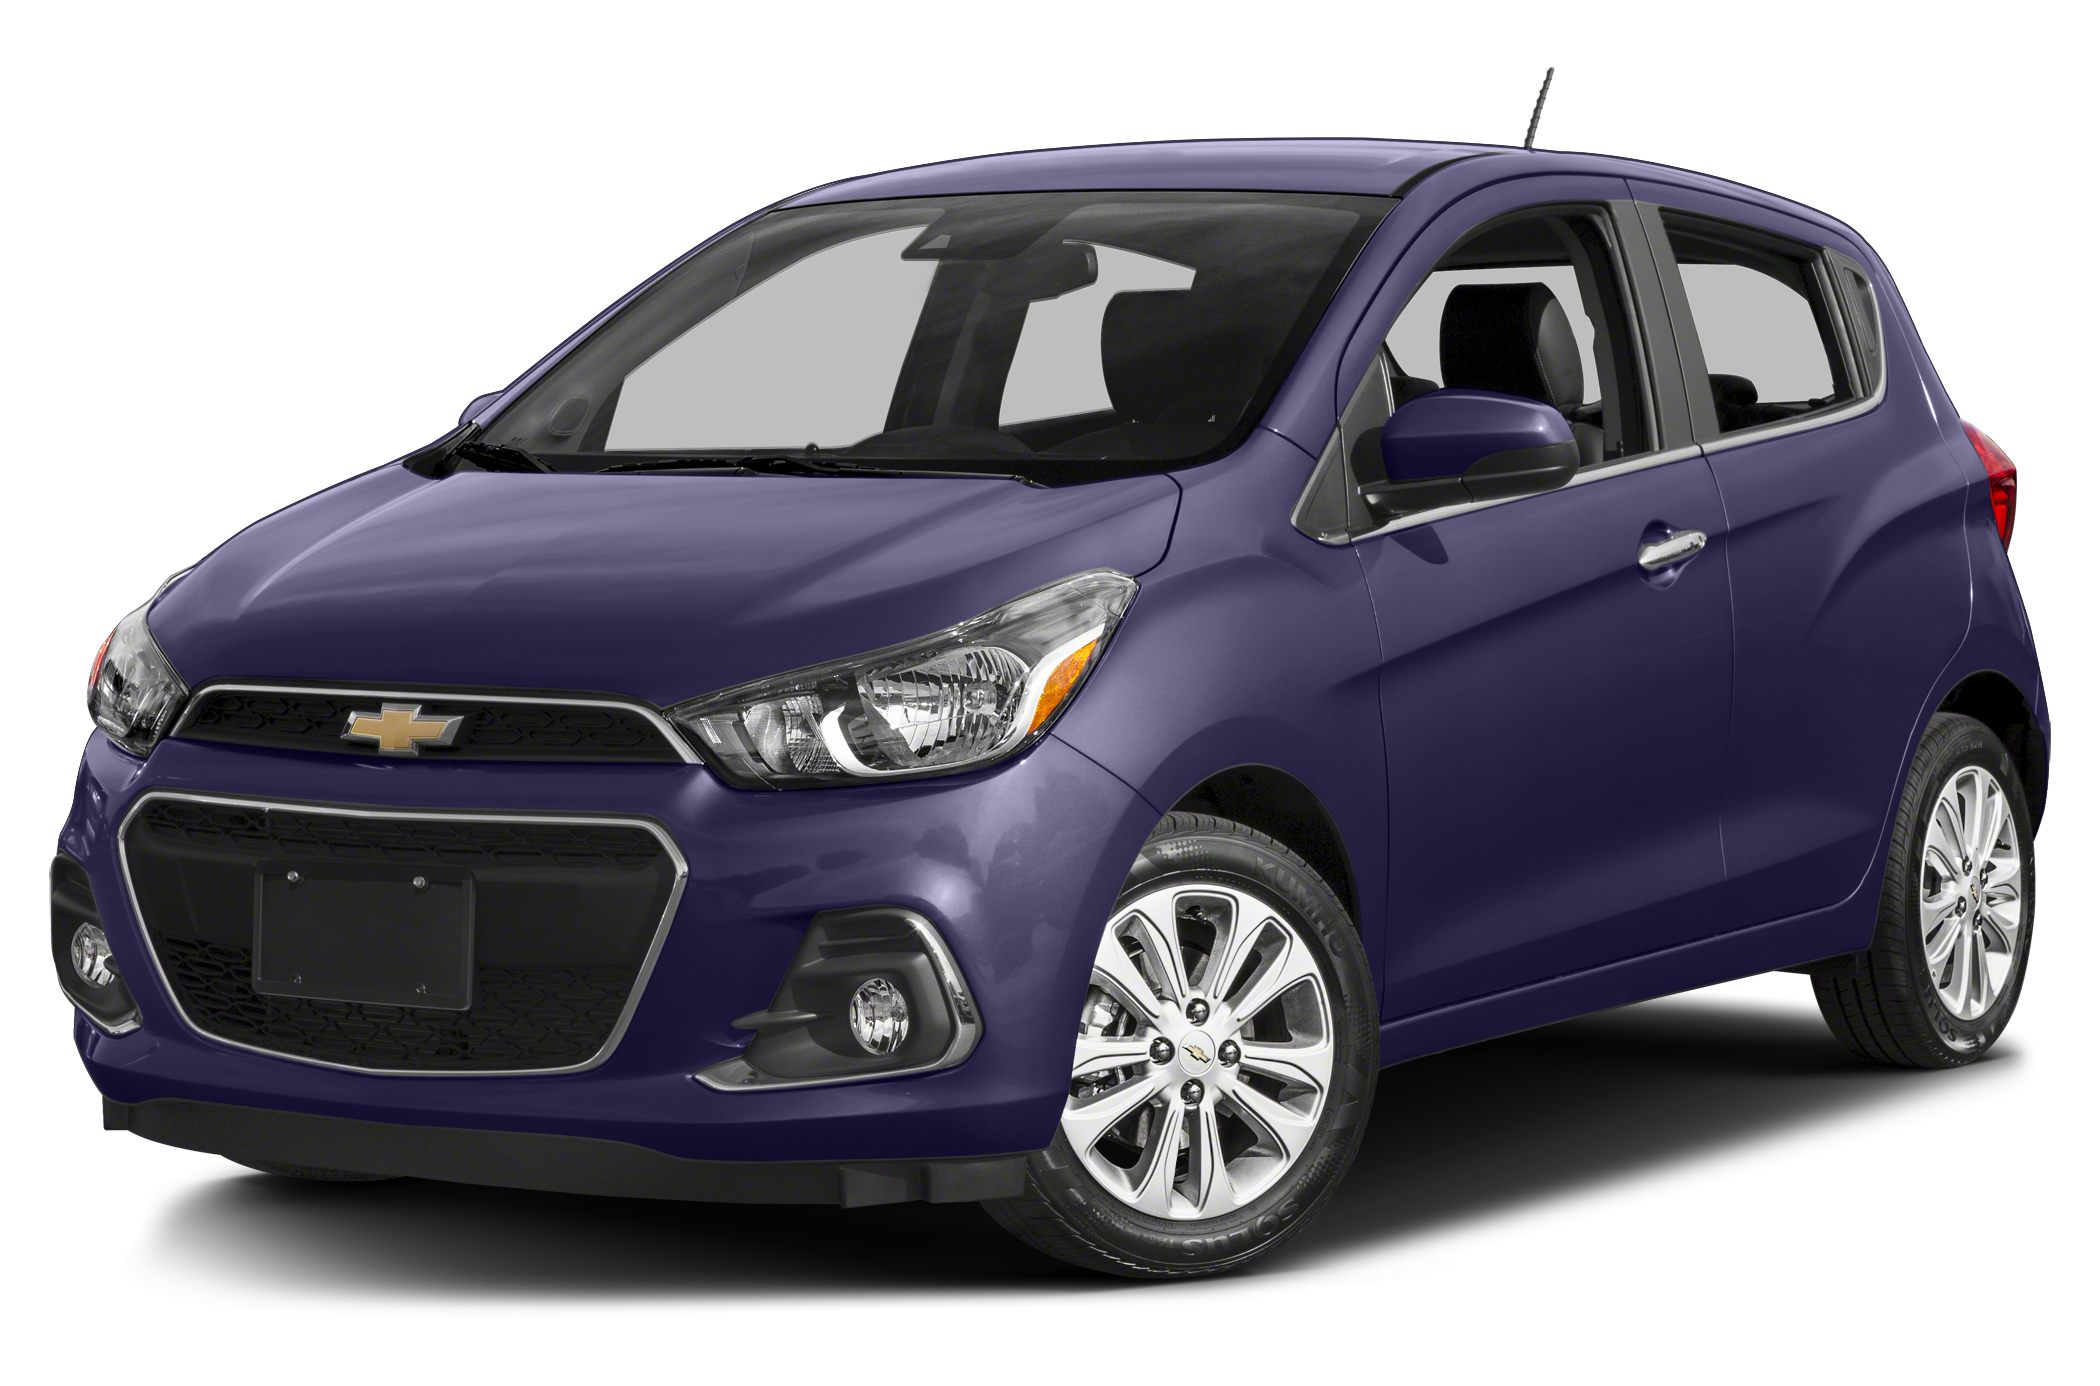 2016 chevrolet spark styles features highlights. Black Bedroom Furniture Sets. Home Design Ideas